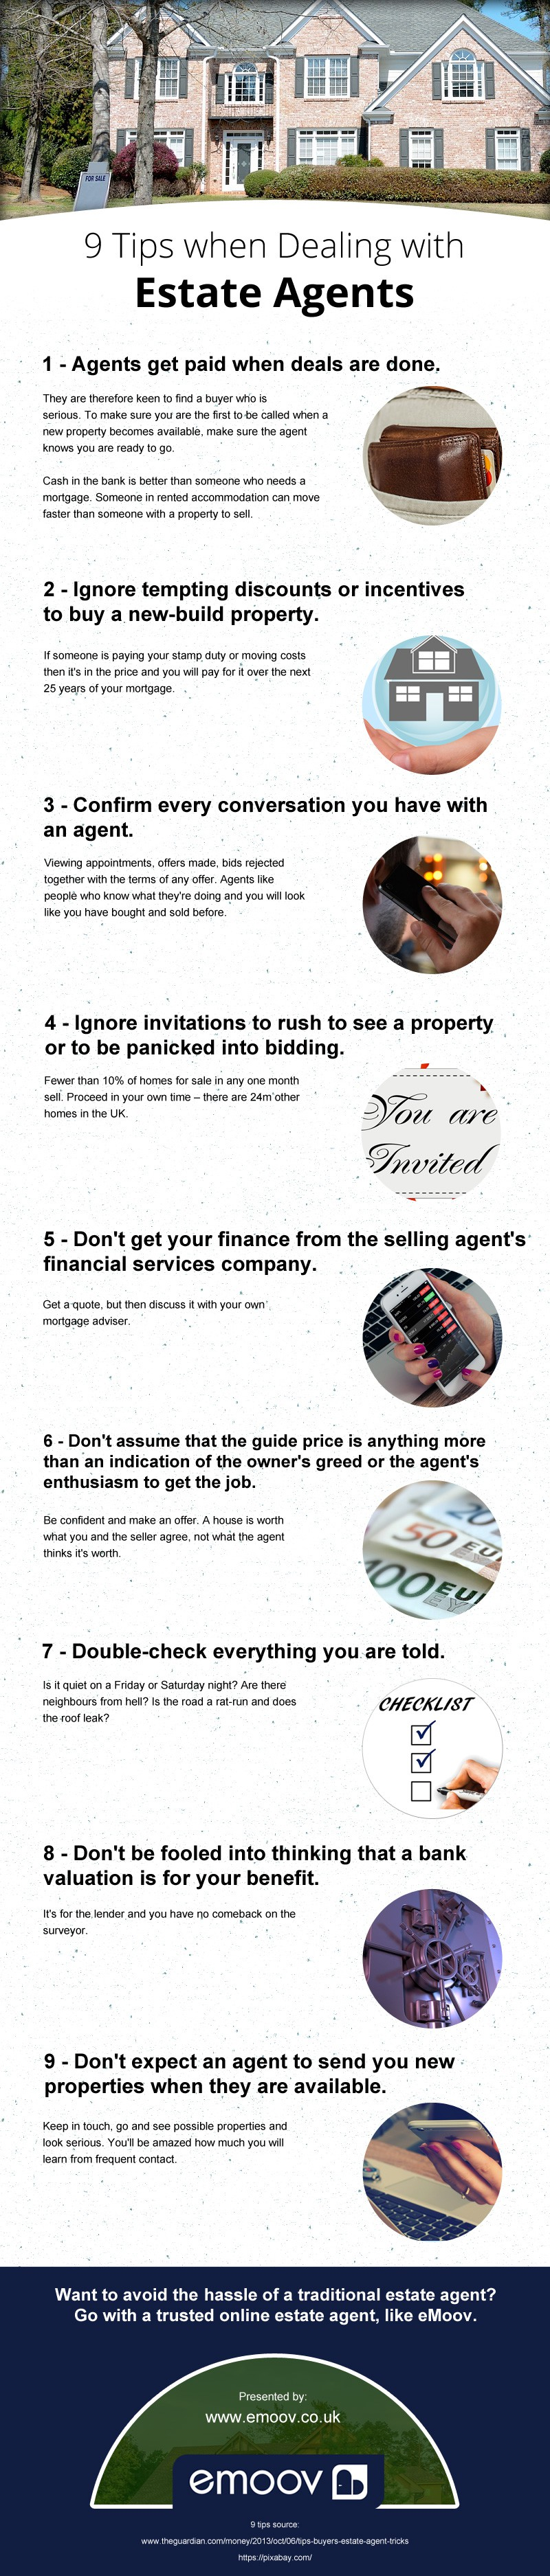 9 Tips When Dealing With Estate Agents